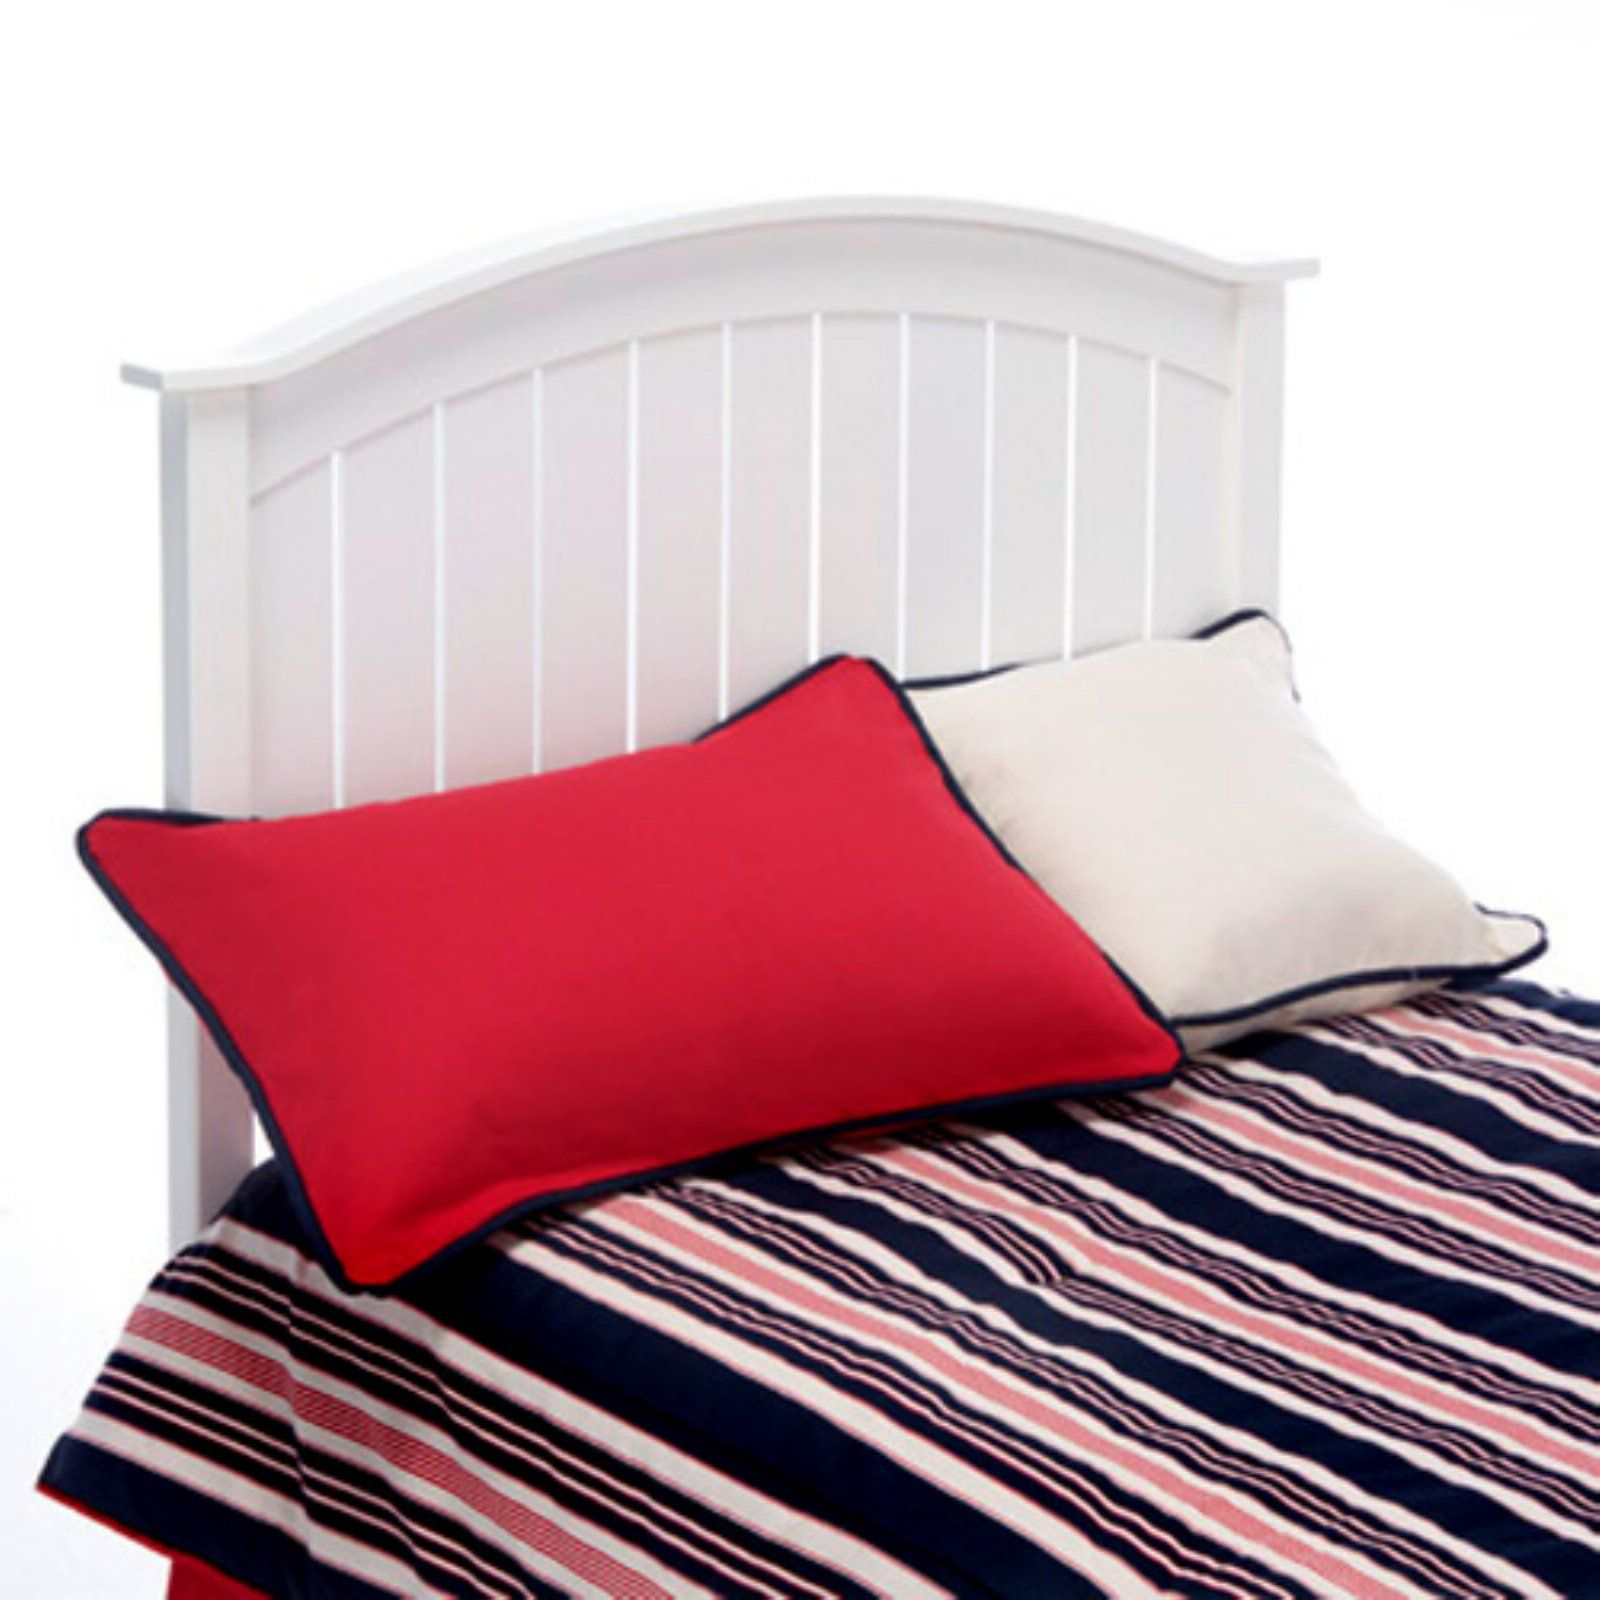 Fashion Bed Group Finley Headboard White, Size Twin Bed